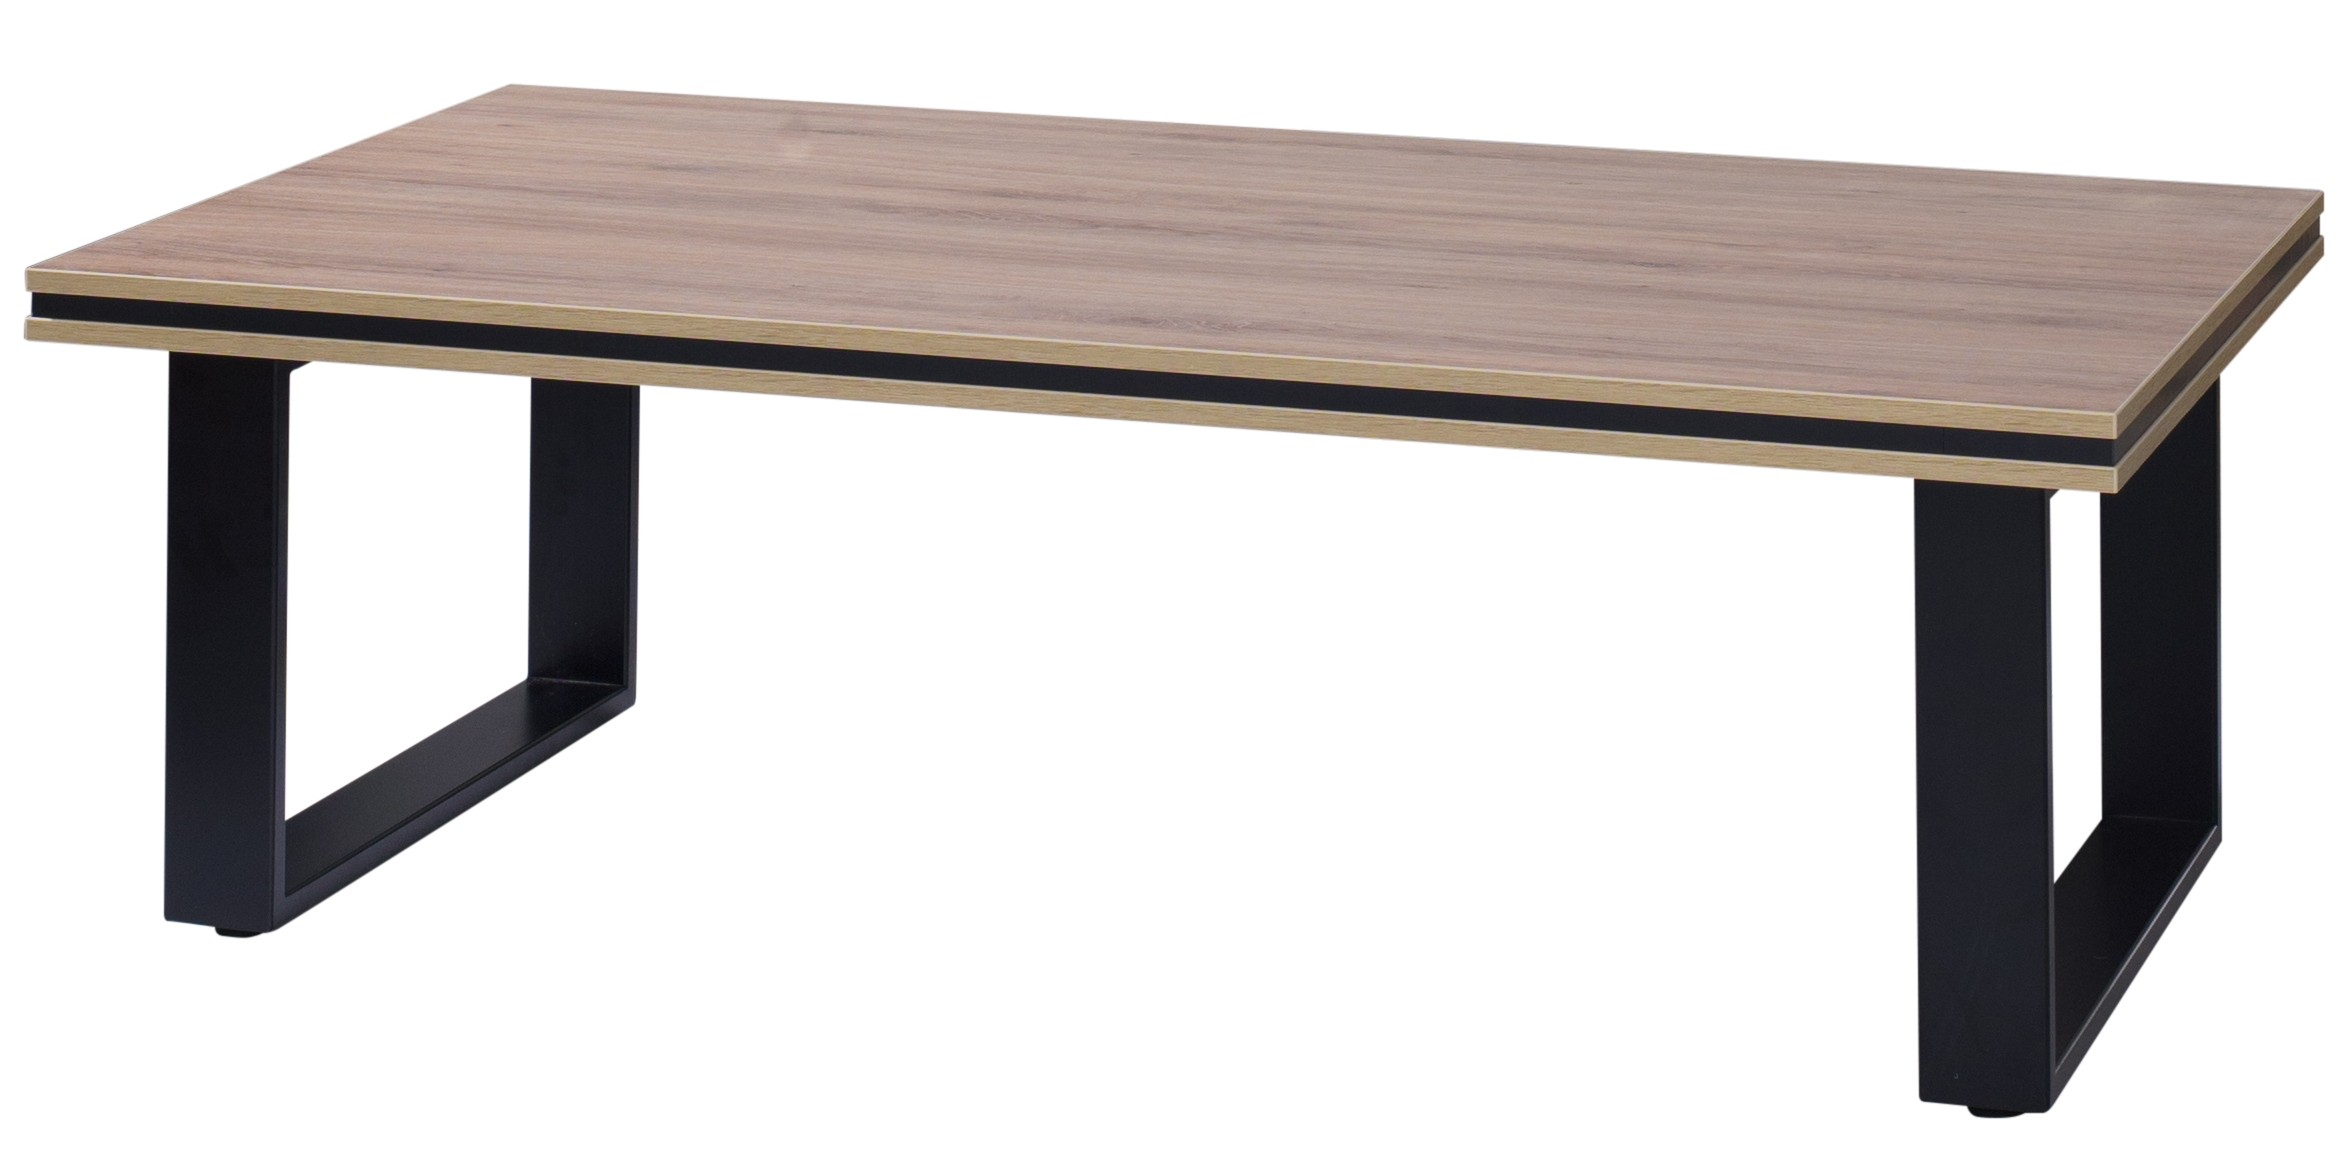 Pieds Metal Pour Table Basse.Price Factory